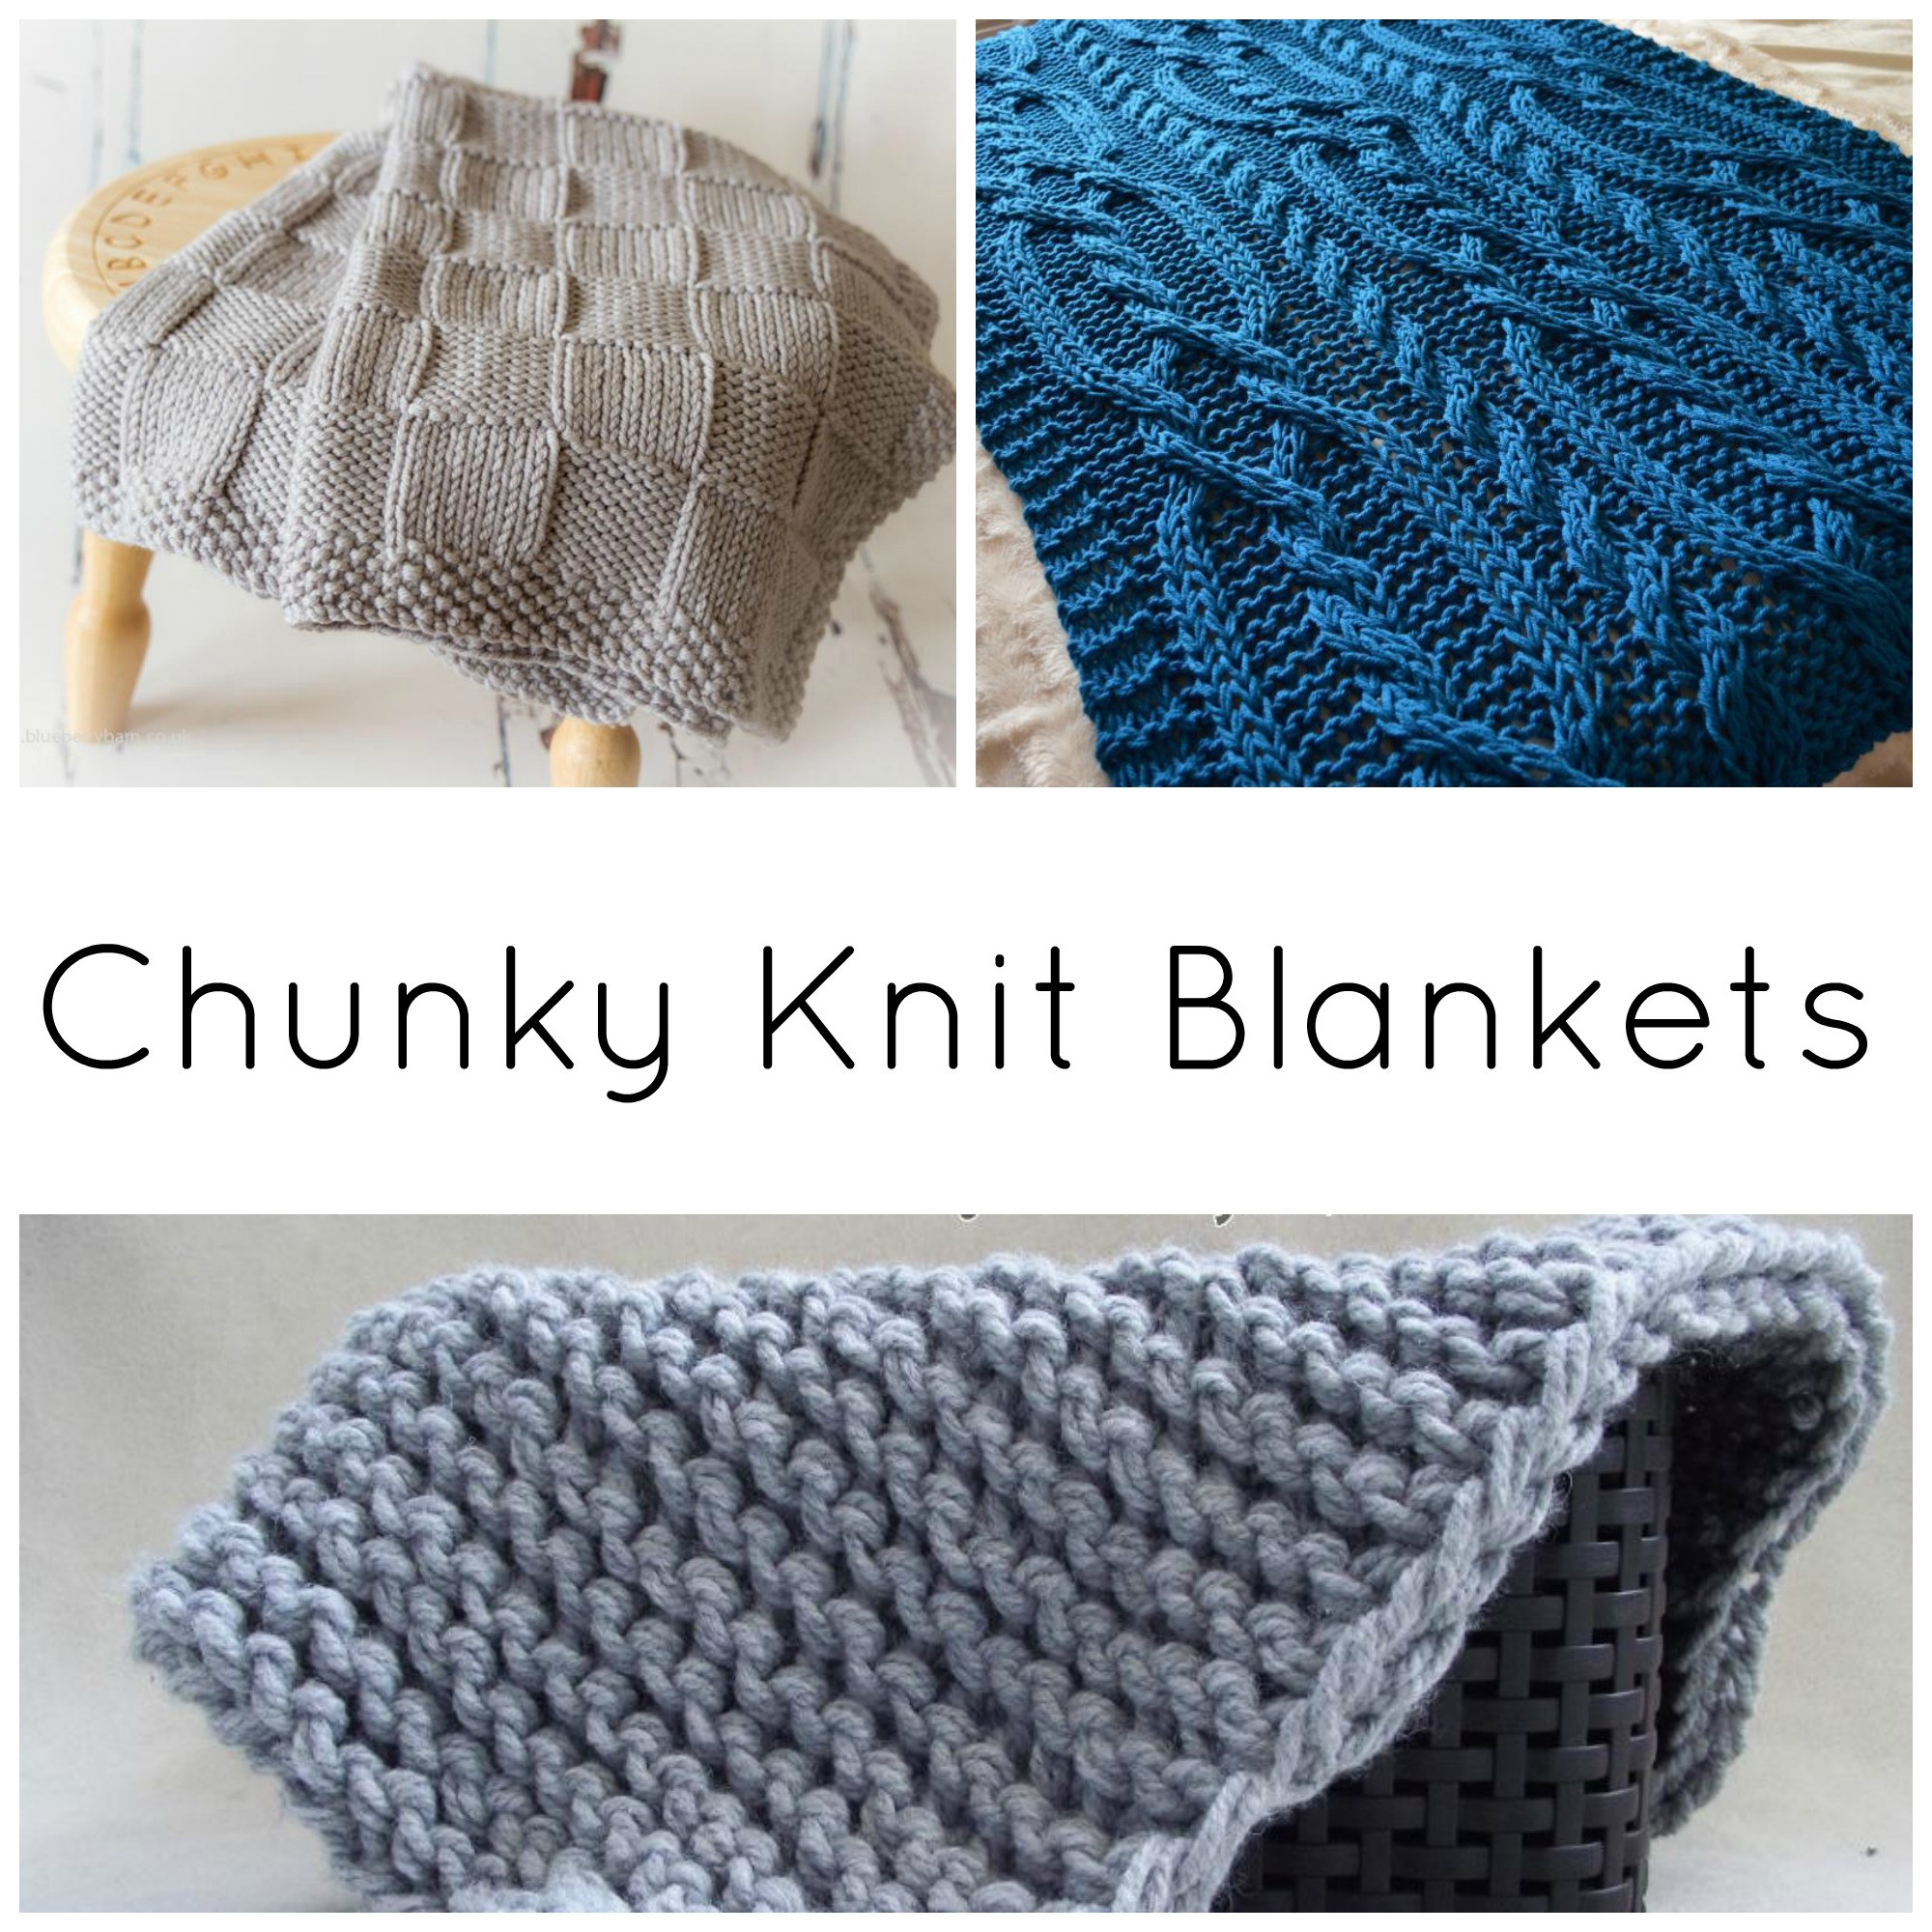 Knitted Blanket Patterns Luxury 10 Quick & Cozy Chunky Knit Blanket Patterns On Craftsy Of Adorable 45 Photos Knitted Blanket Patterns